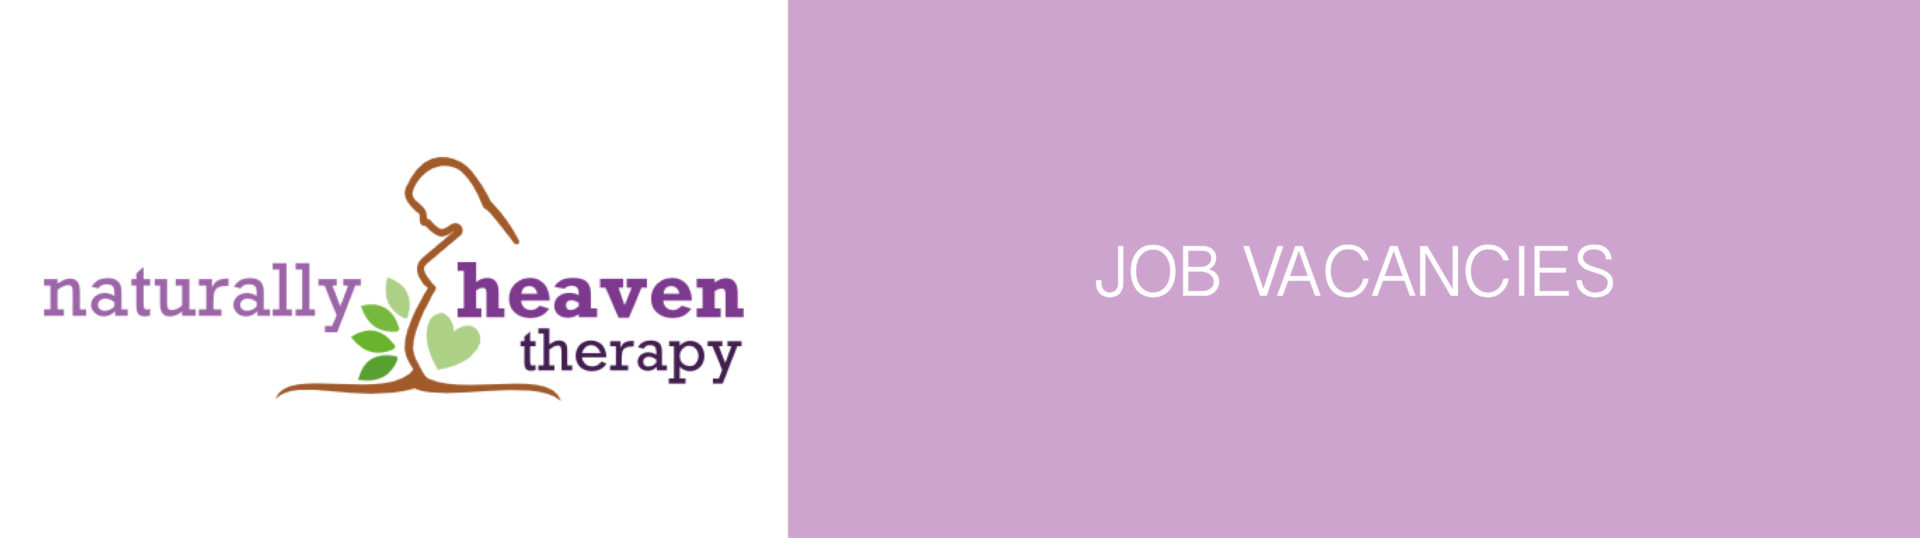 Massage JOB VACANCIES at naturally heaven therapy clinic in newcastle Upon tyne, Tyne & Wear